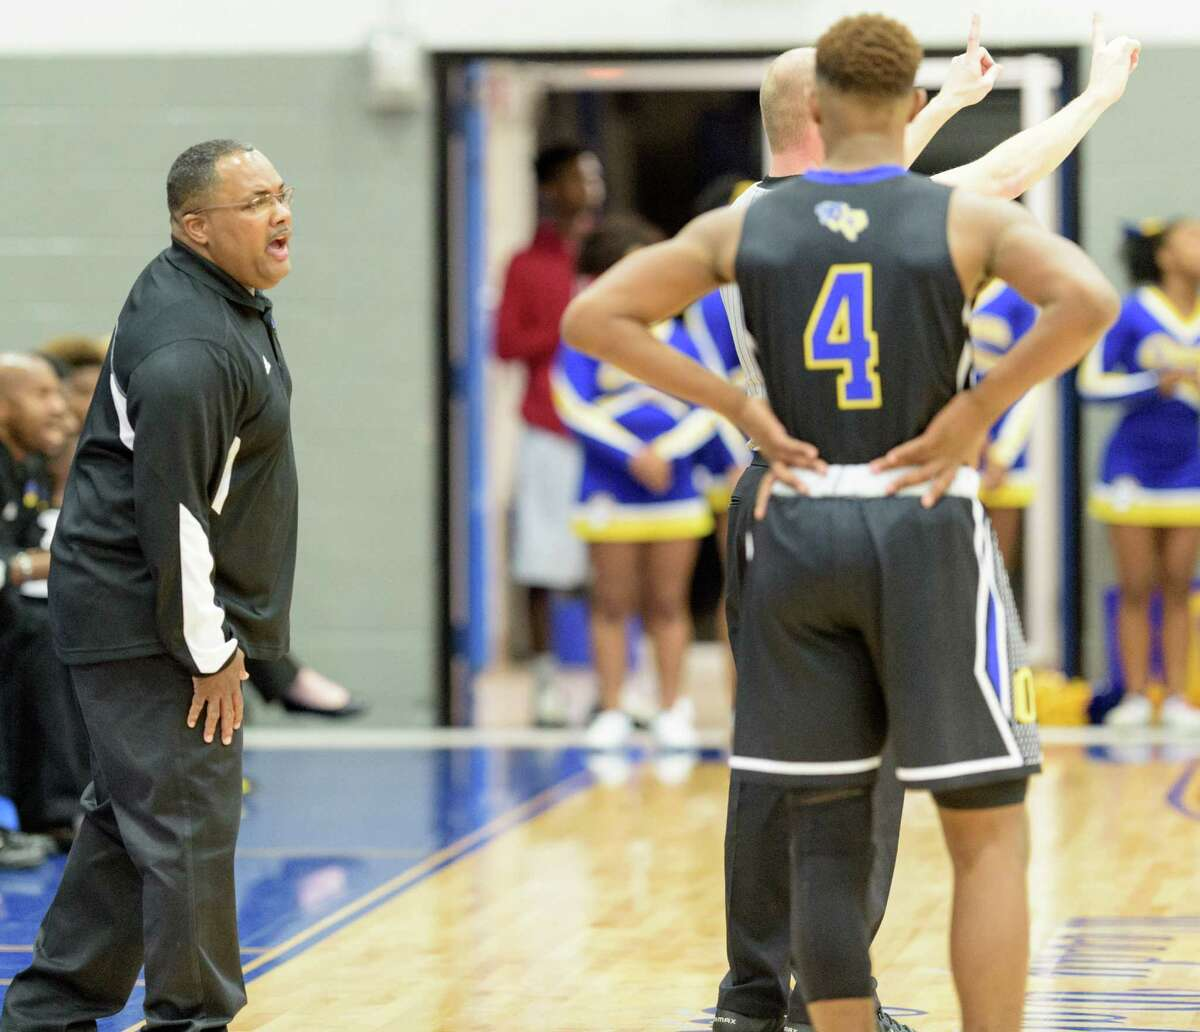 Beaumont Ozen Panthers Head Coach, Marquis Saveat shouts instructions to Travon Gipson (4) during a free throw in the second half against the Fort Bend Bush Broncos in a high school basketball game on Friday, February 26, 2016 at the Winnie Brown Gym at Sterling High School in Baytown Texas.